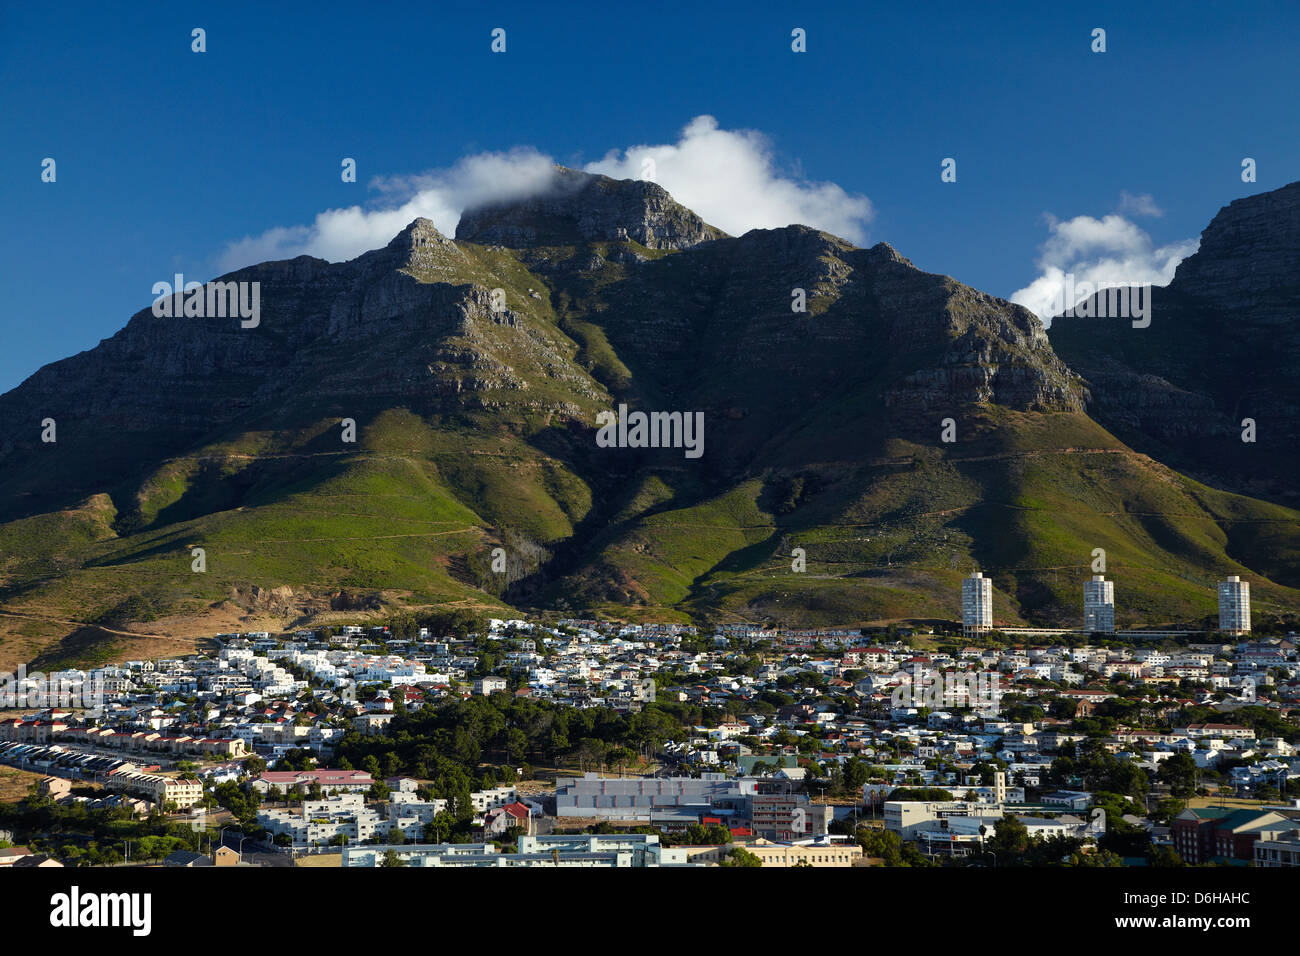 Cape Town and Devil's Peak, Table Mountain, Cape Town, South Africa - Stock Image